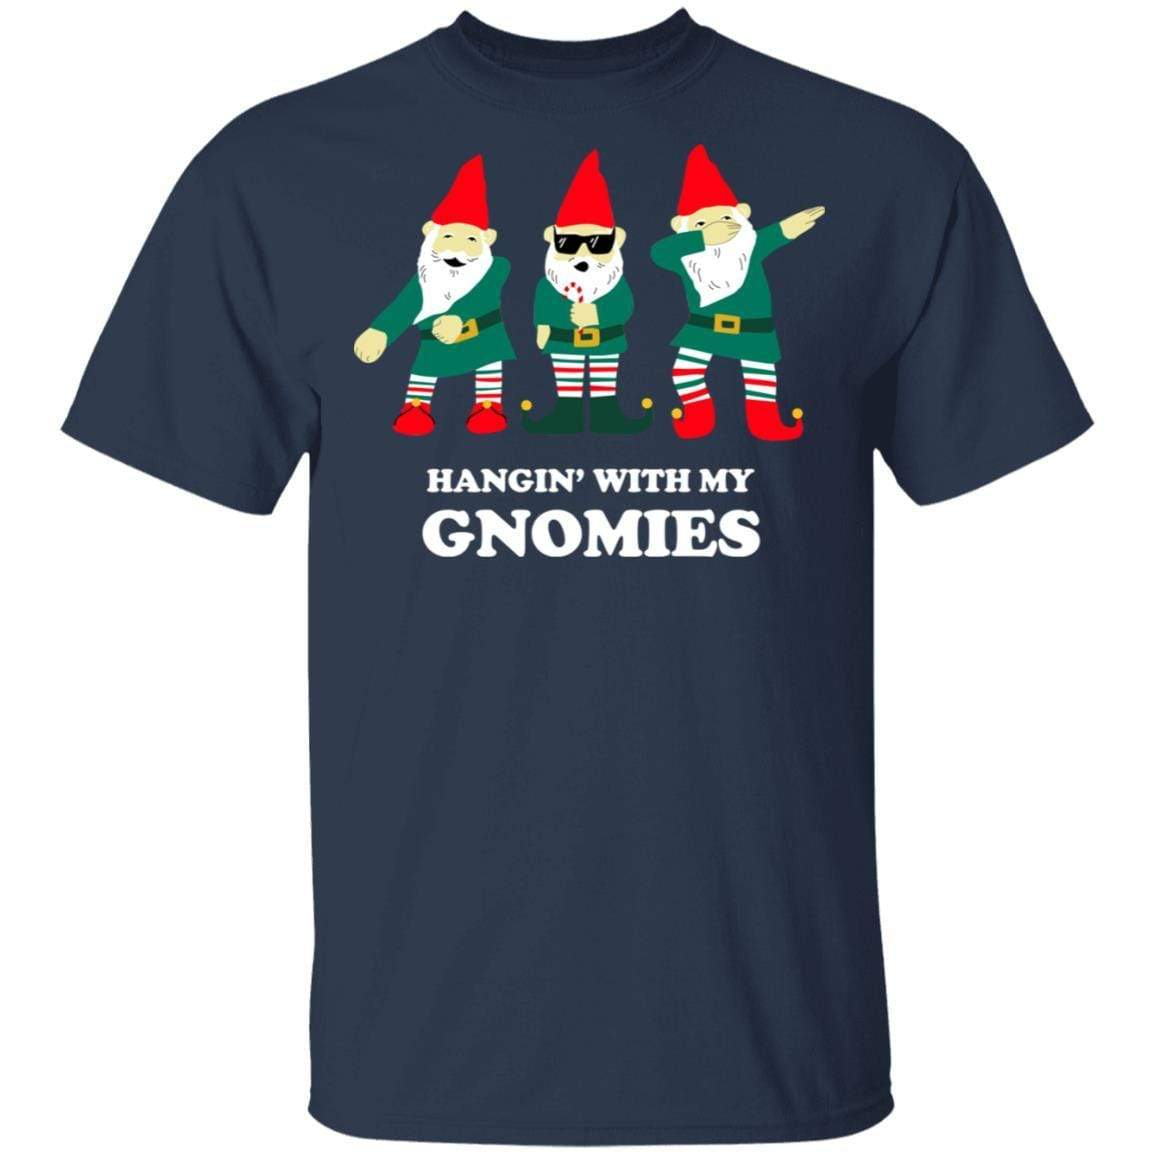 Hangin' With My Gnomies T-Shirts, Hoodies 1049-9966-89726580-48248 - Tee Ript